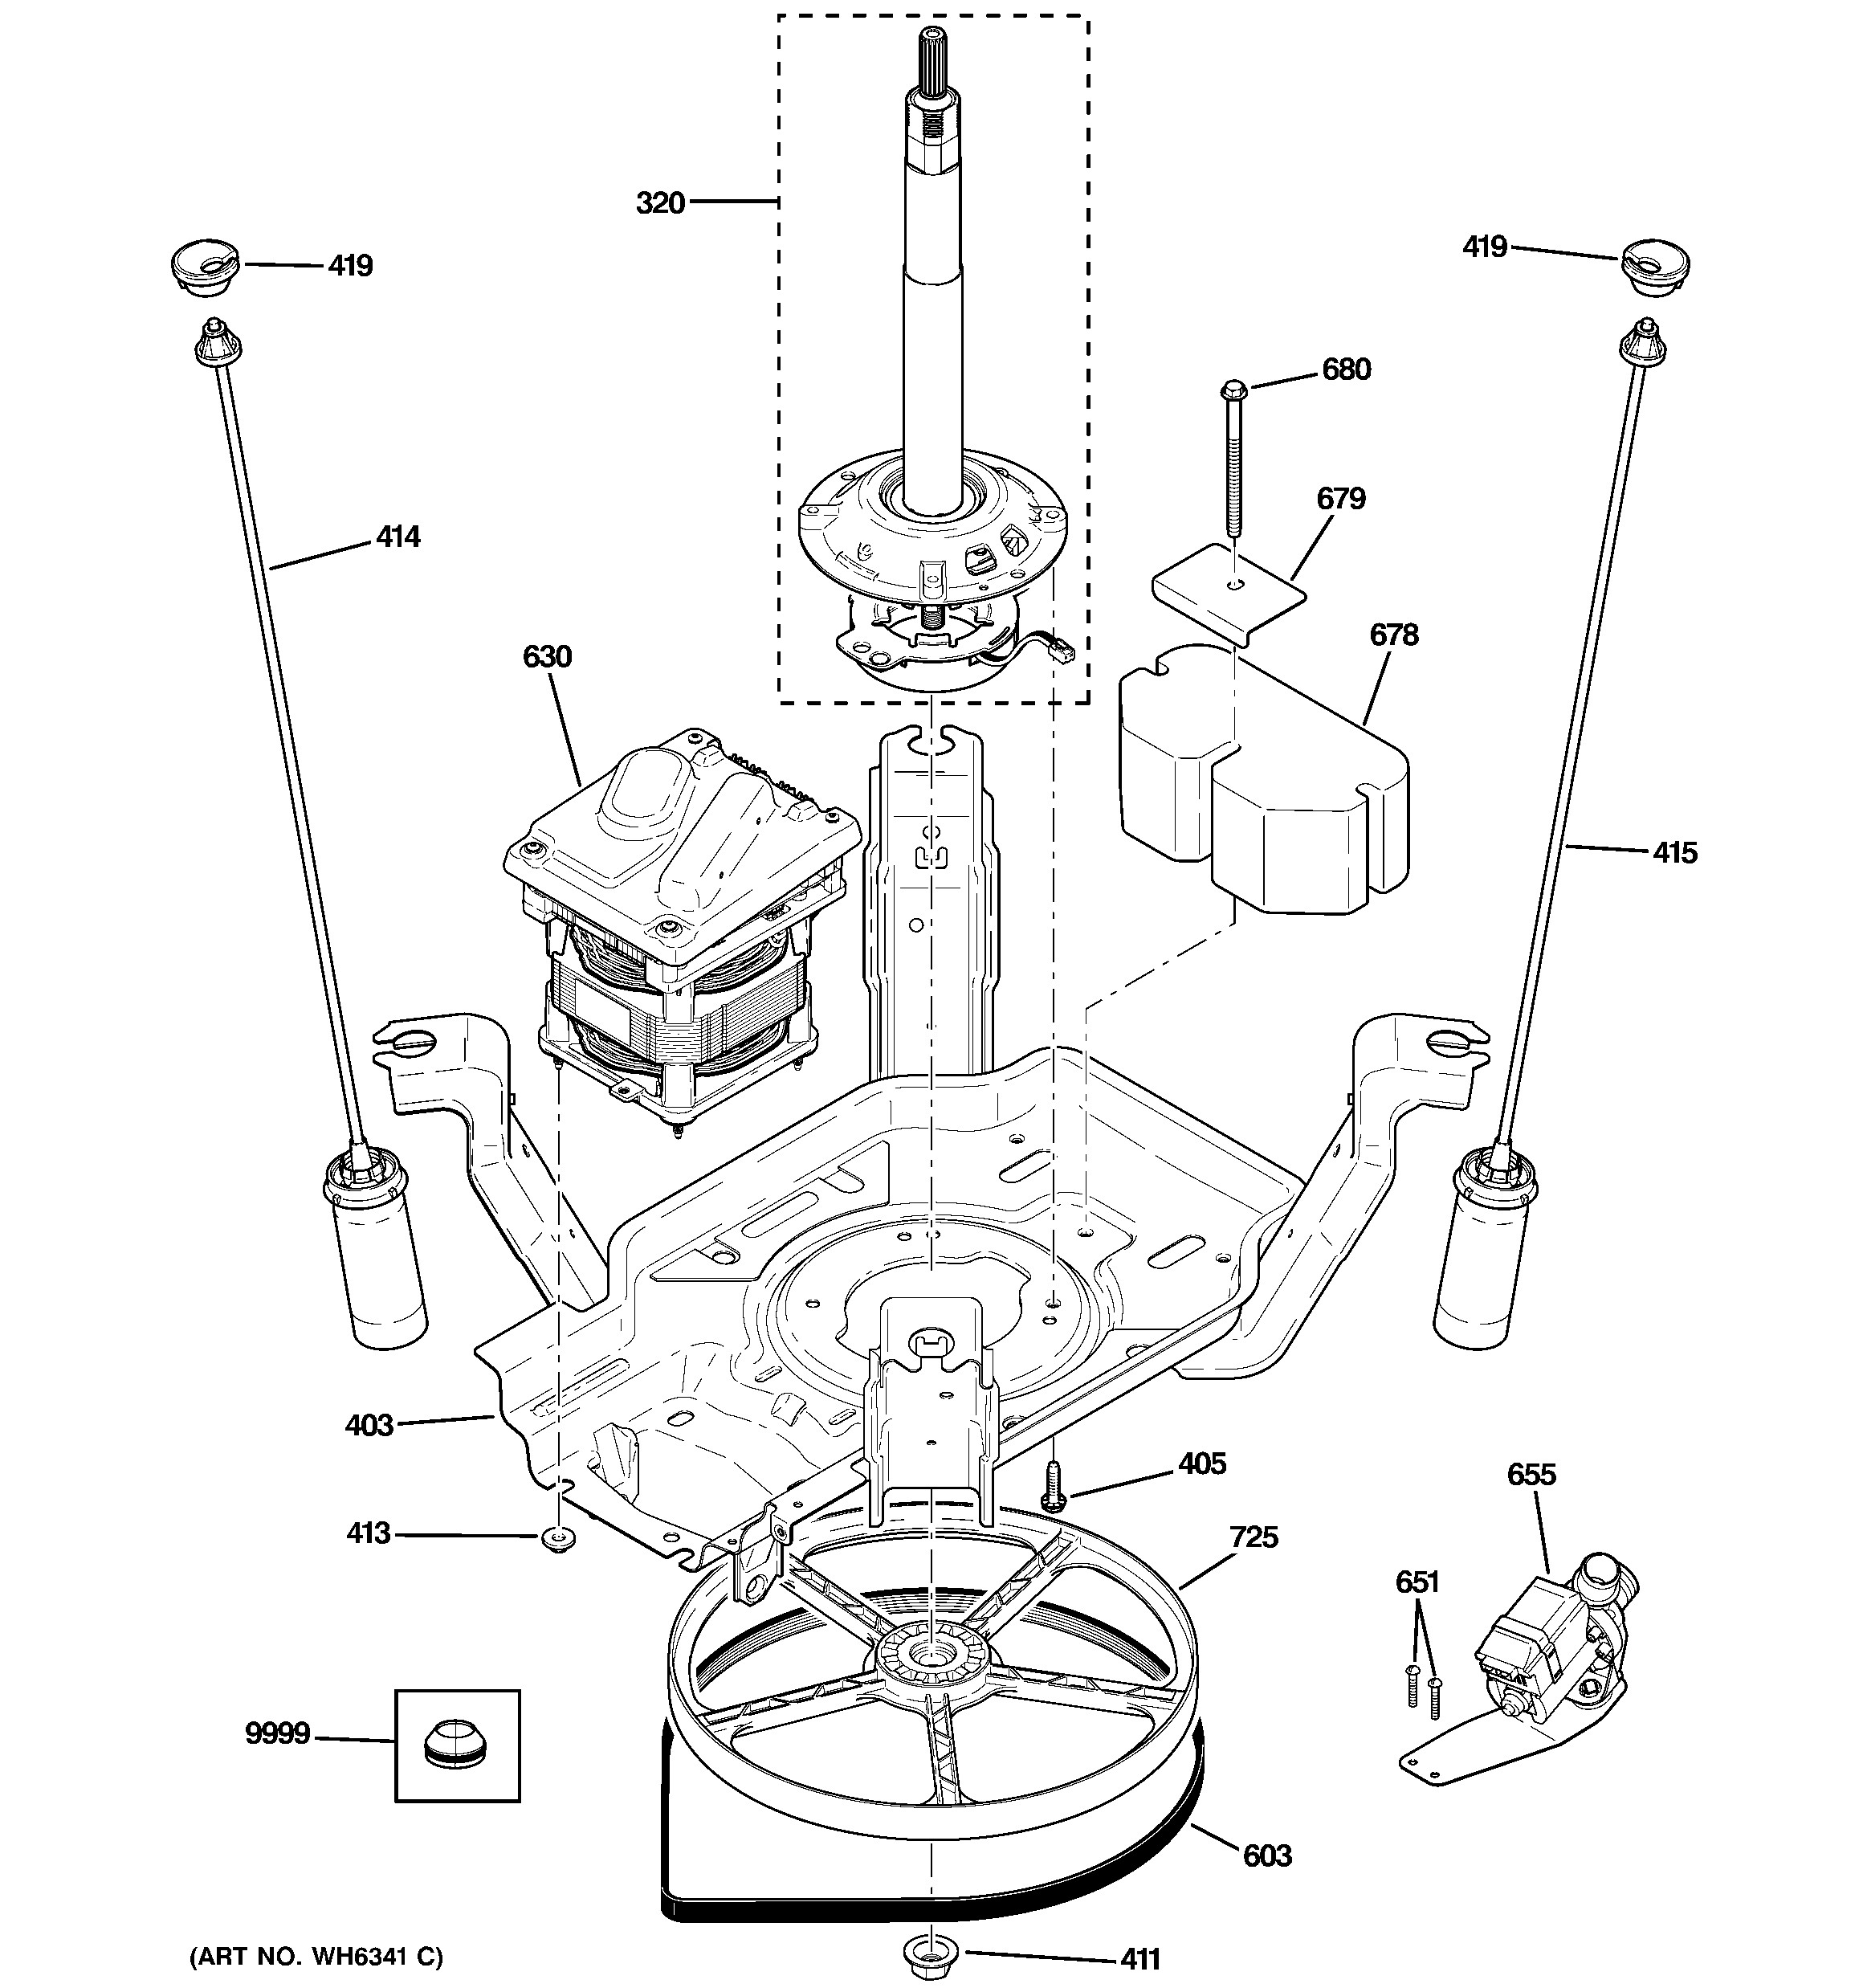 Gas Engine Parts Diagram Ge Model Wlrr5000g0ww Residential Washers Genuine Parts Of Gas Engine Parts Diagram